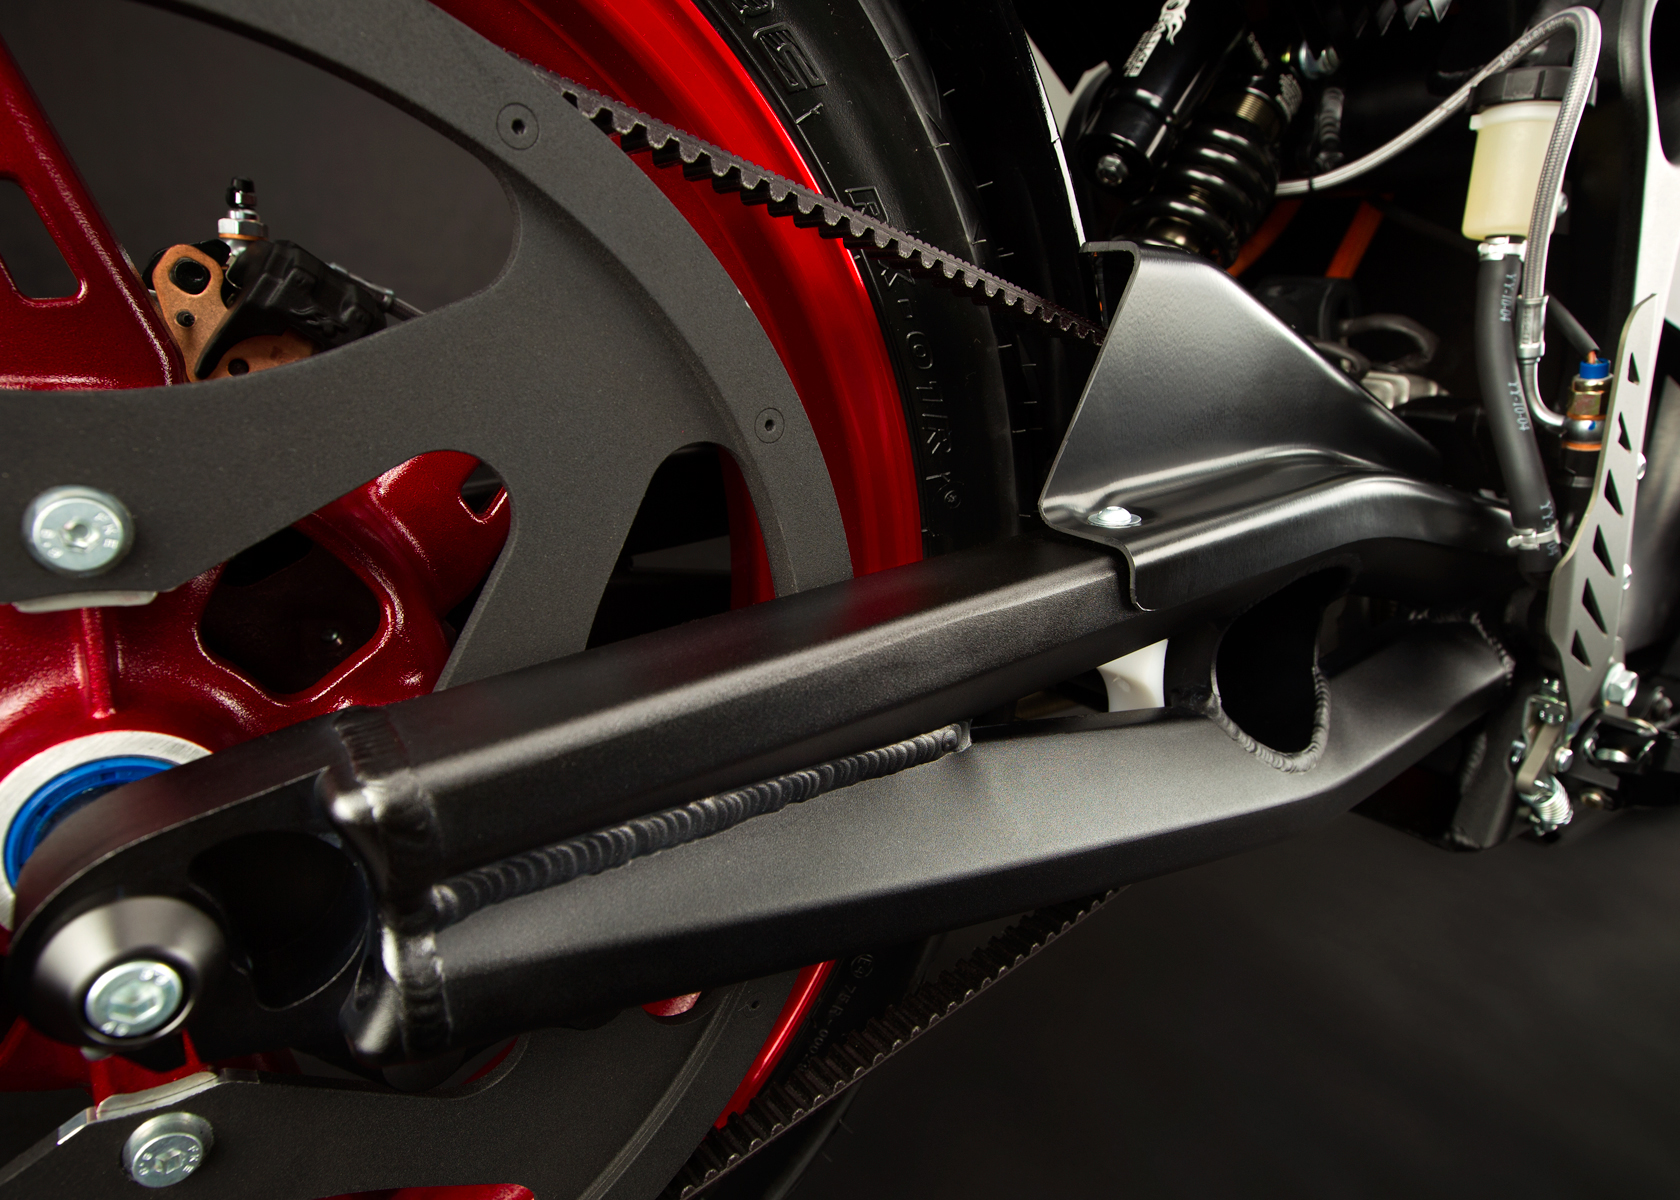 '.2012 Zero S Electric Motorcycle: Swingarm.'